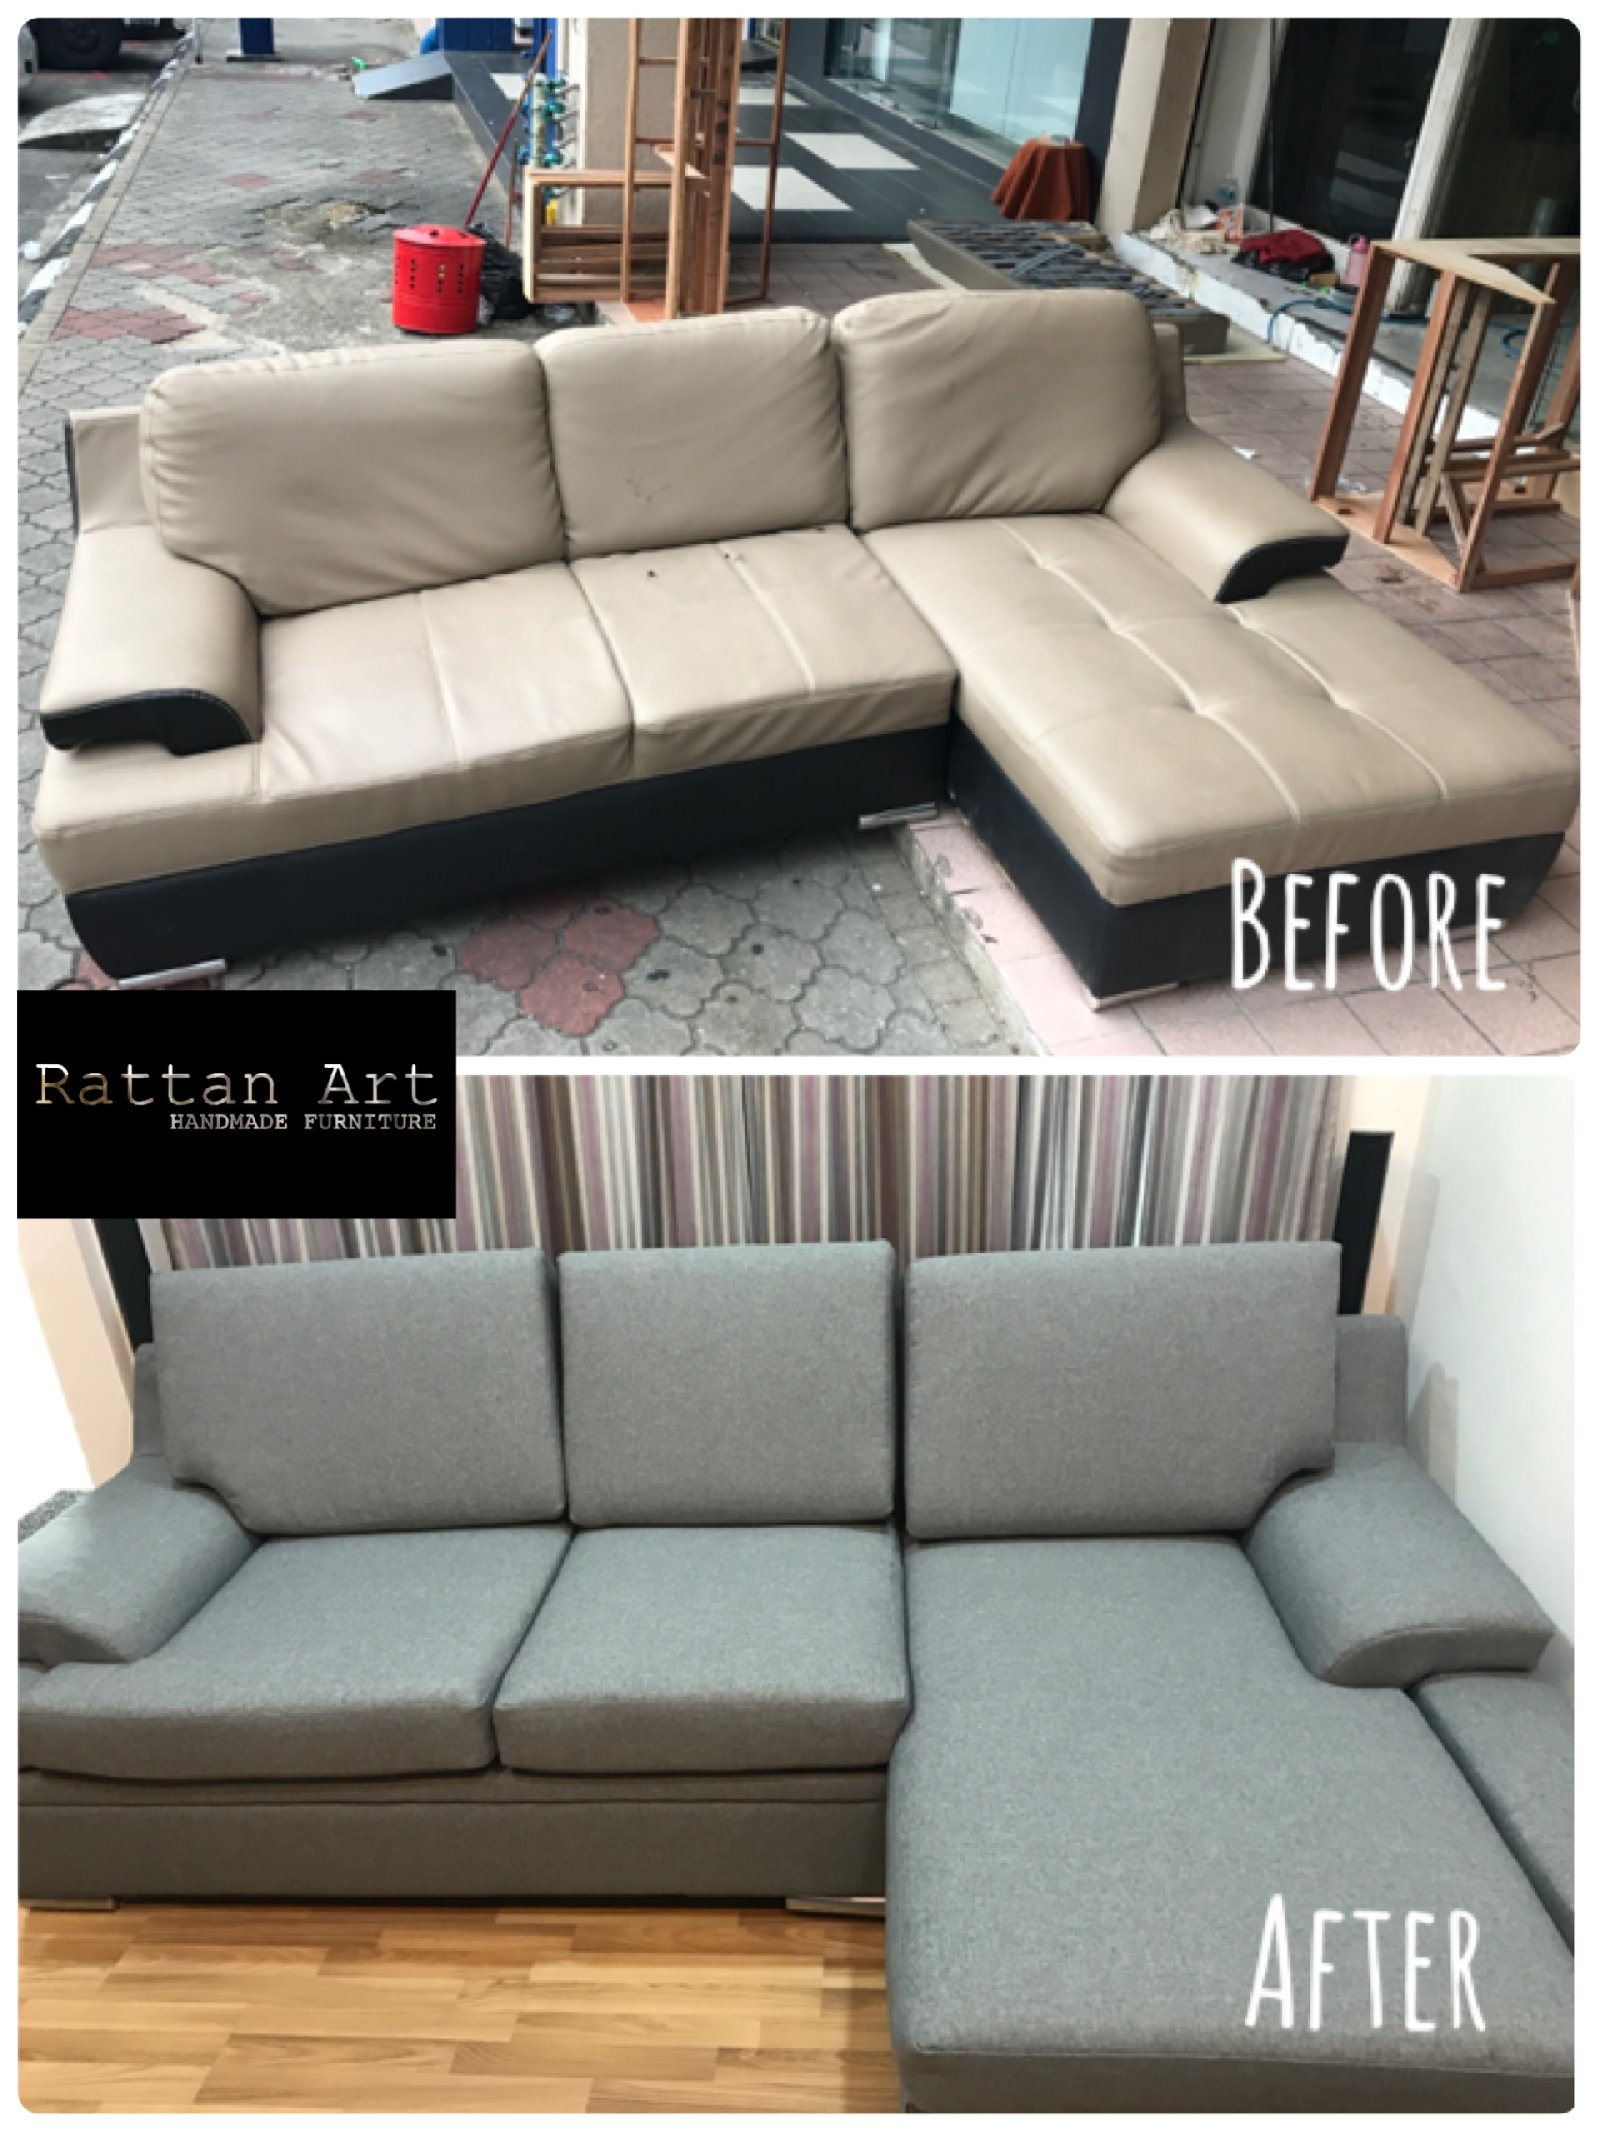 Sofa Upholstery Penang Johor Upholstery Sofa Repair From Rattan Art Handicraft House